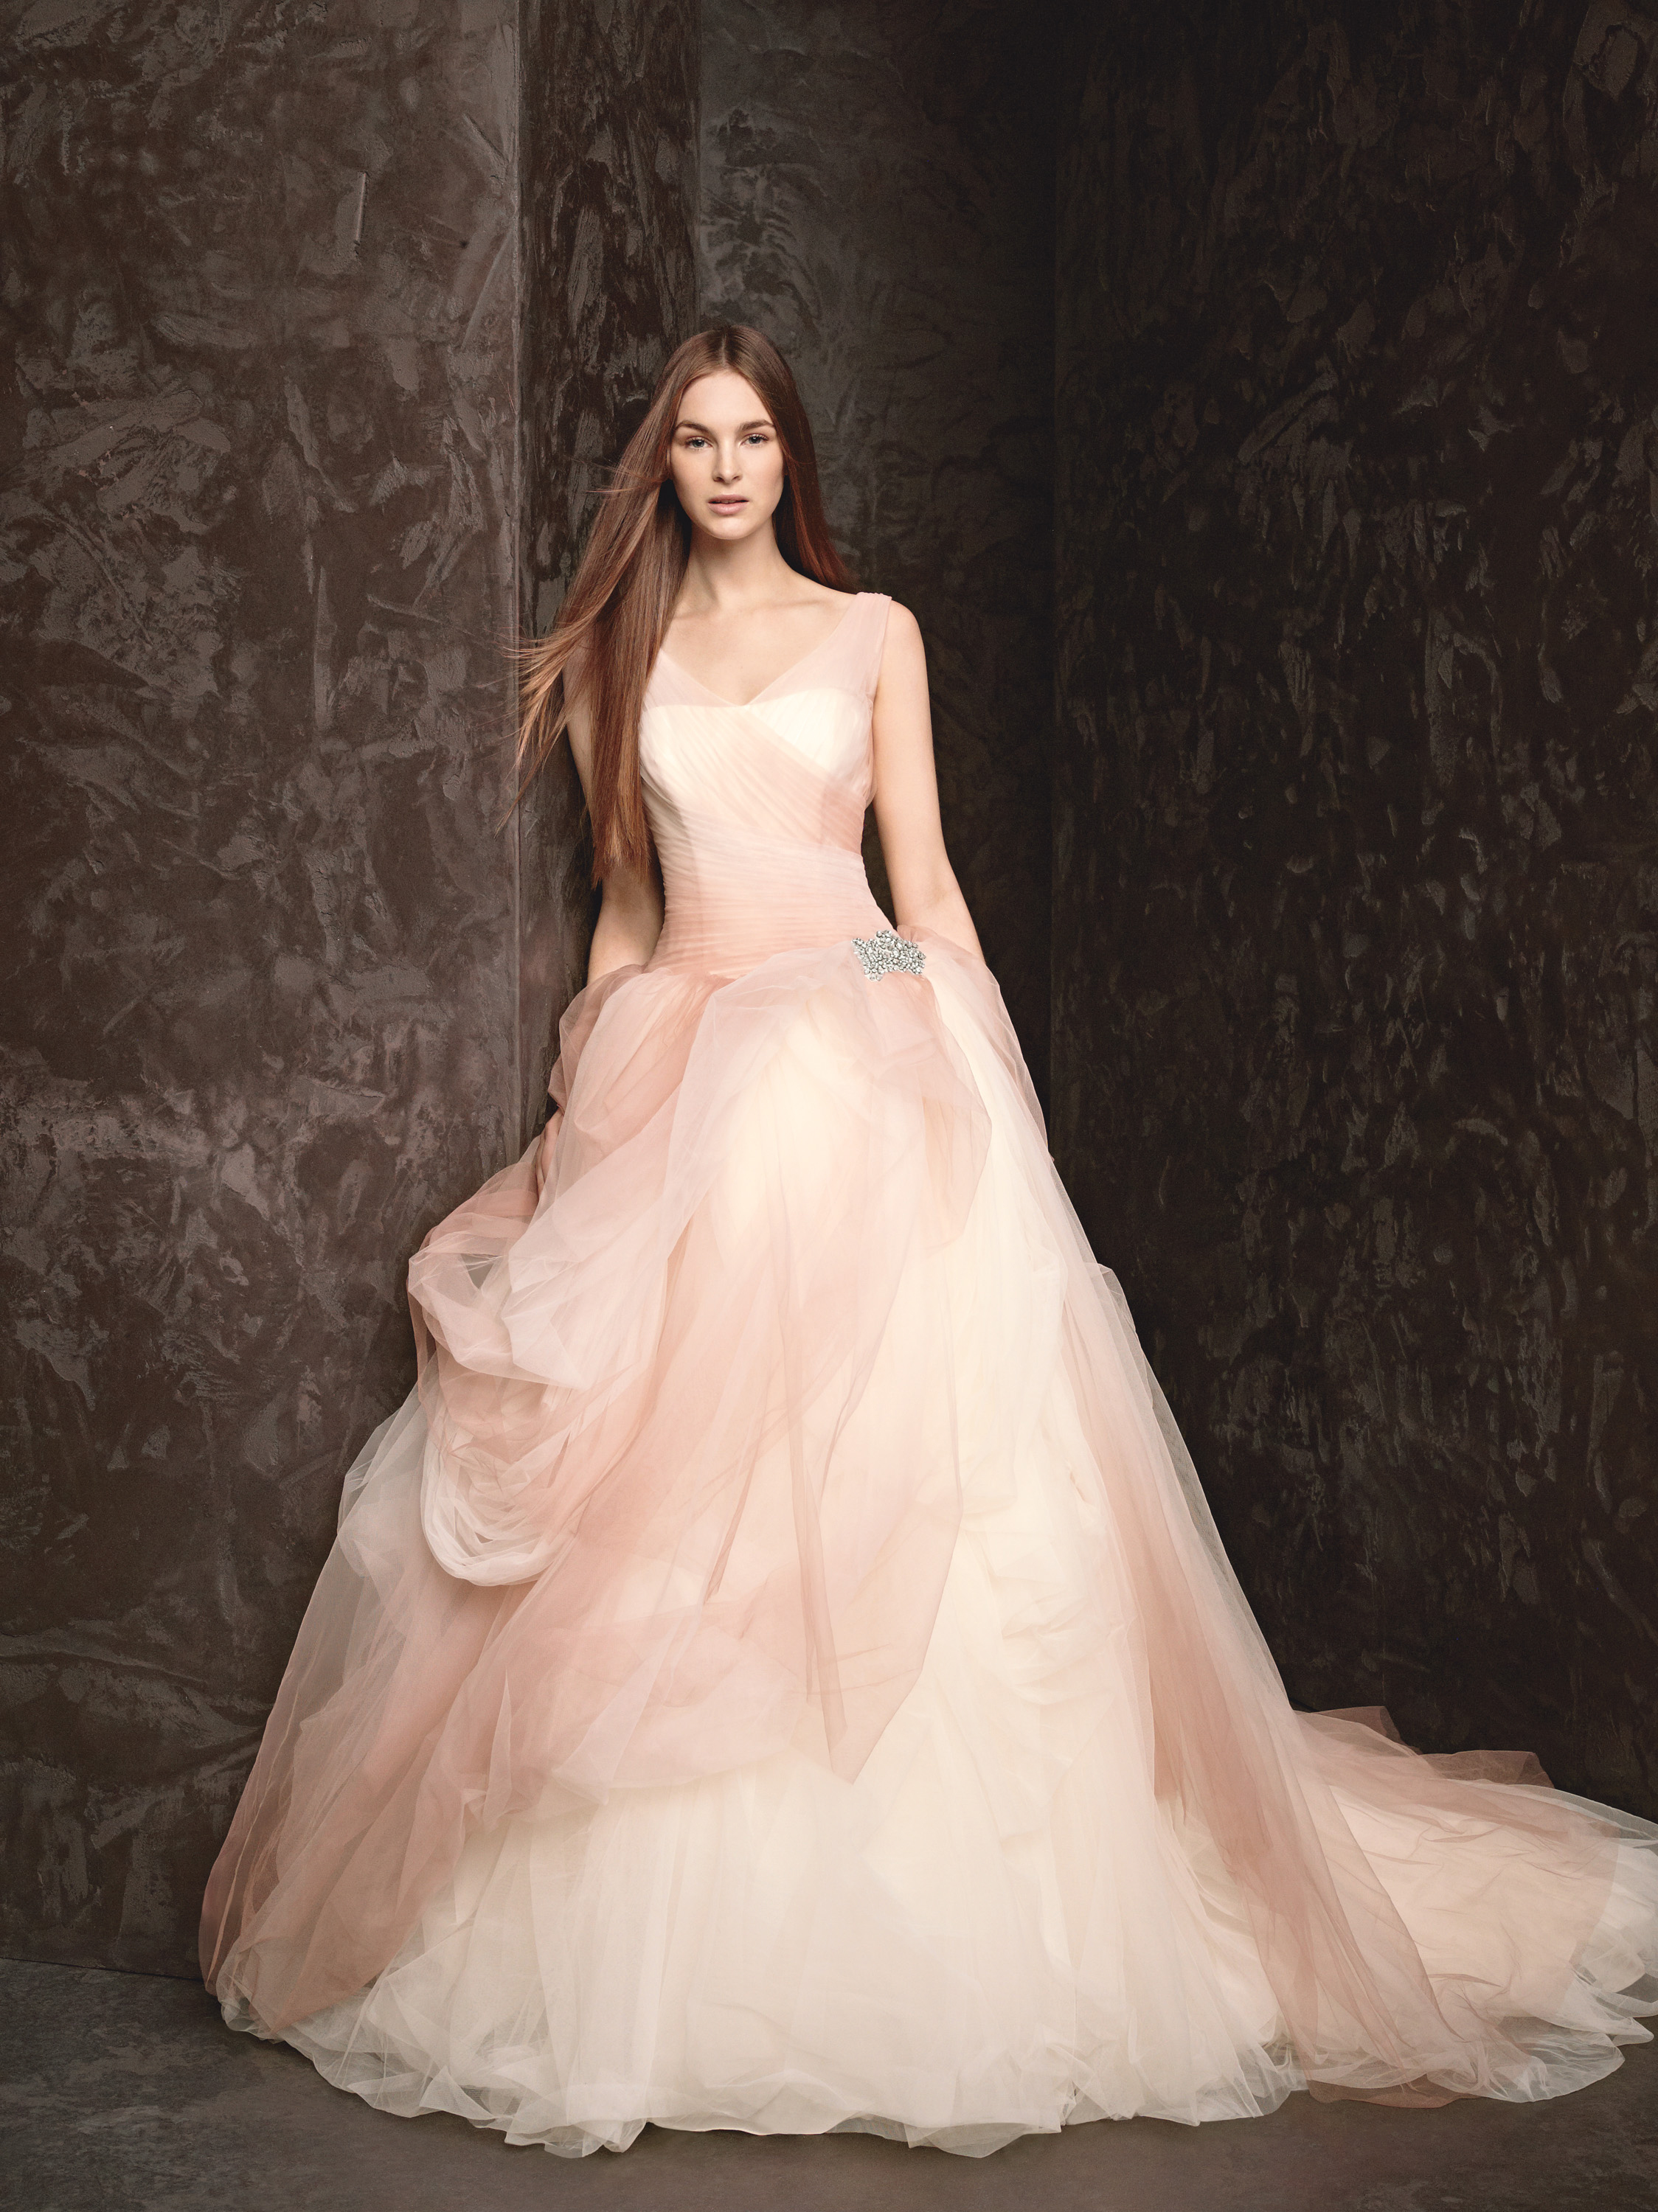 Pink Wedding Dresses Ireland : Spring wedding dress white by vera wang bridal gowns style